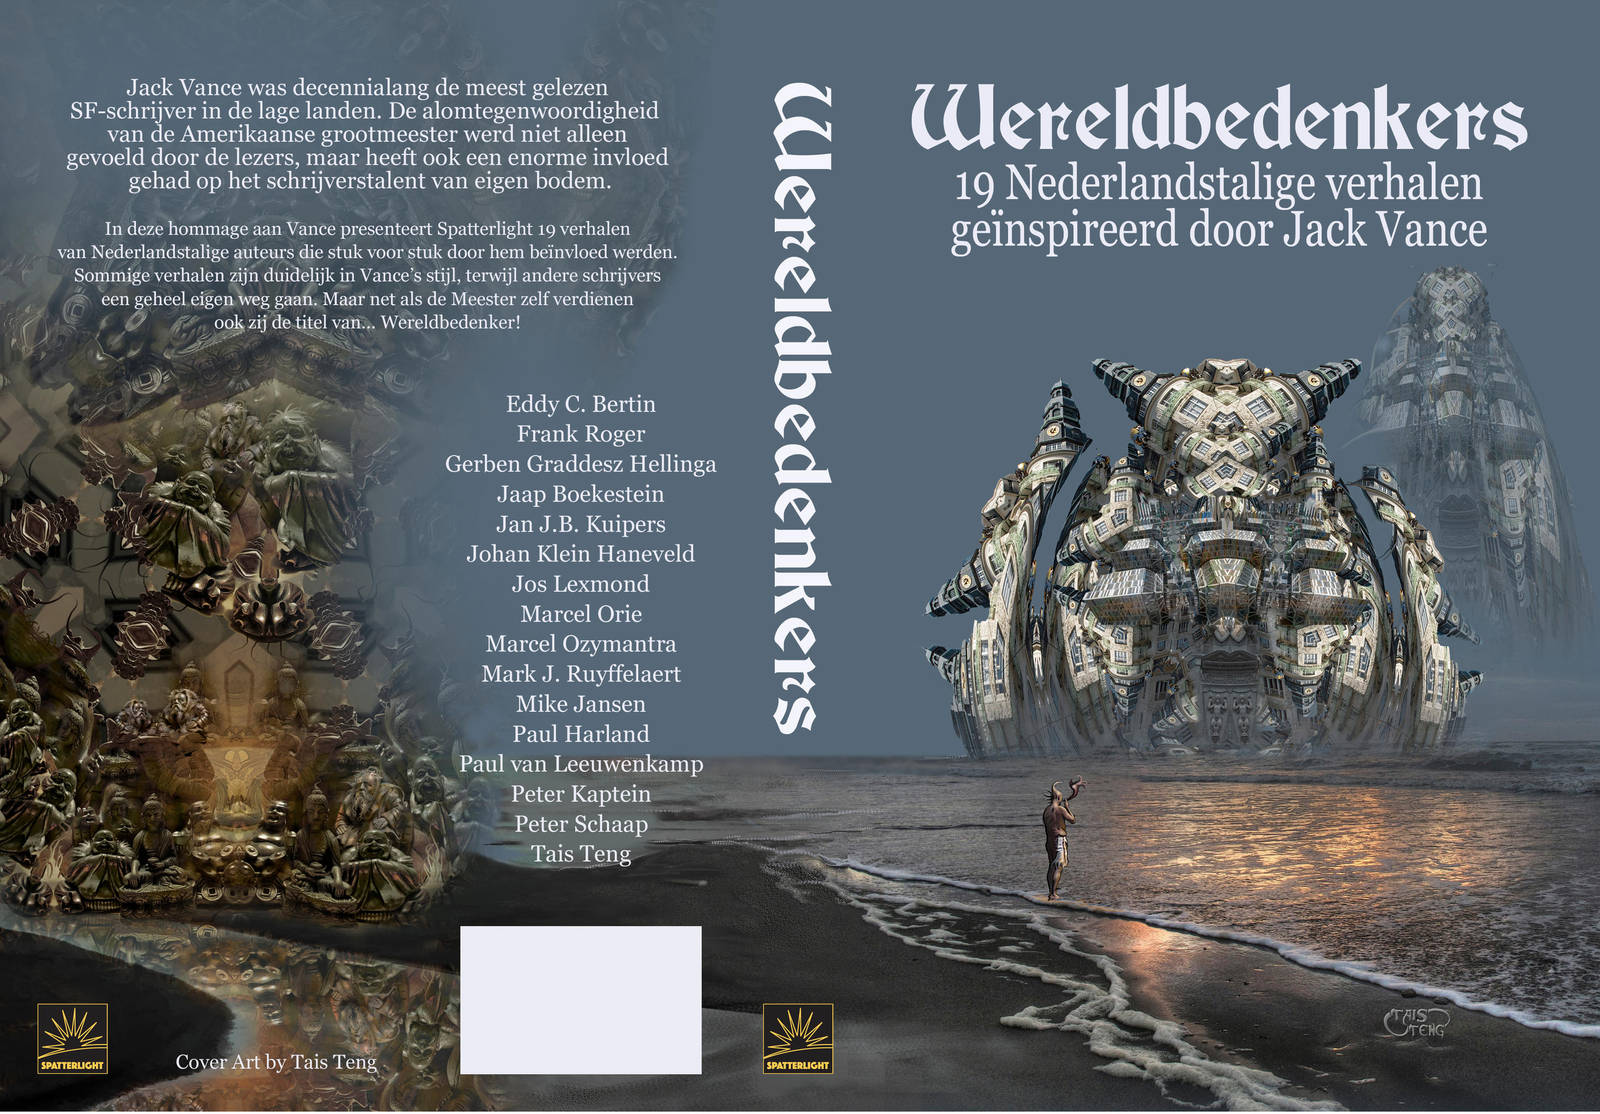 Cover for Dutch Jack Vance tribute collection by taisteng